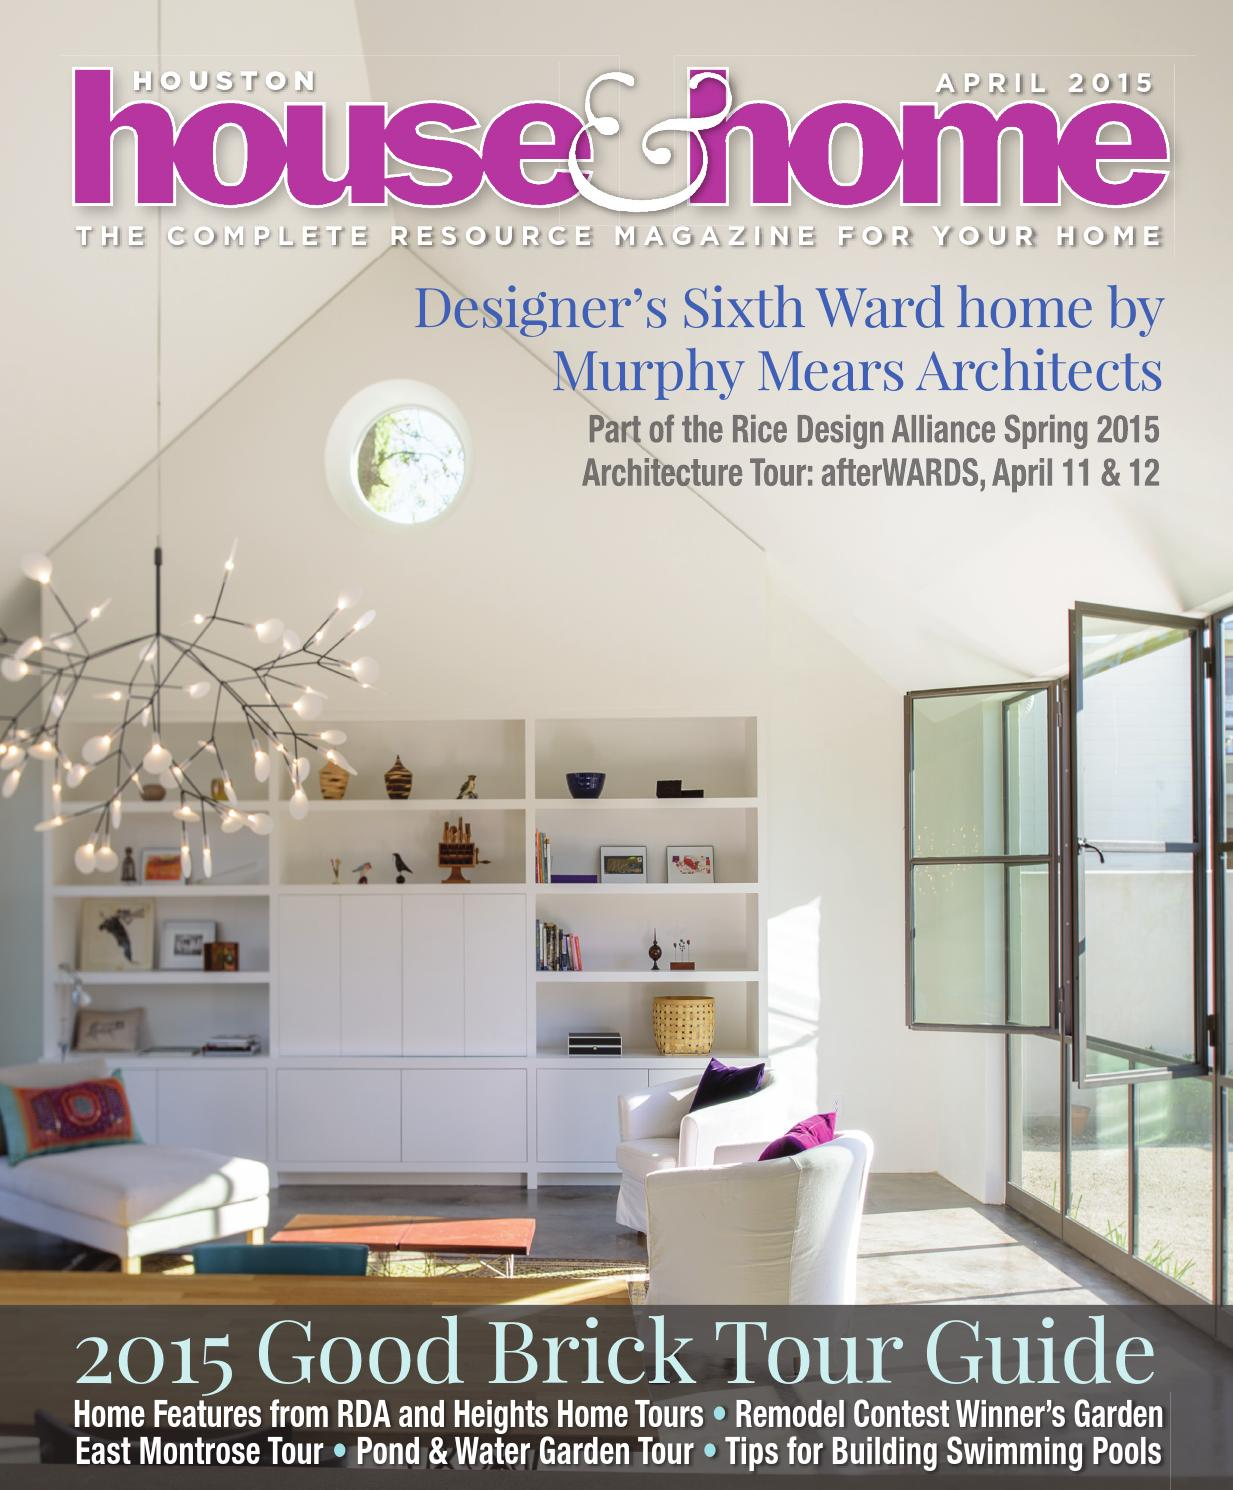 0415 Houhousehome Vir By Houston House U0026 Home Magazine   Issuu